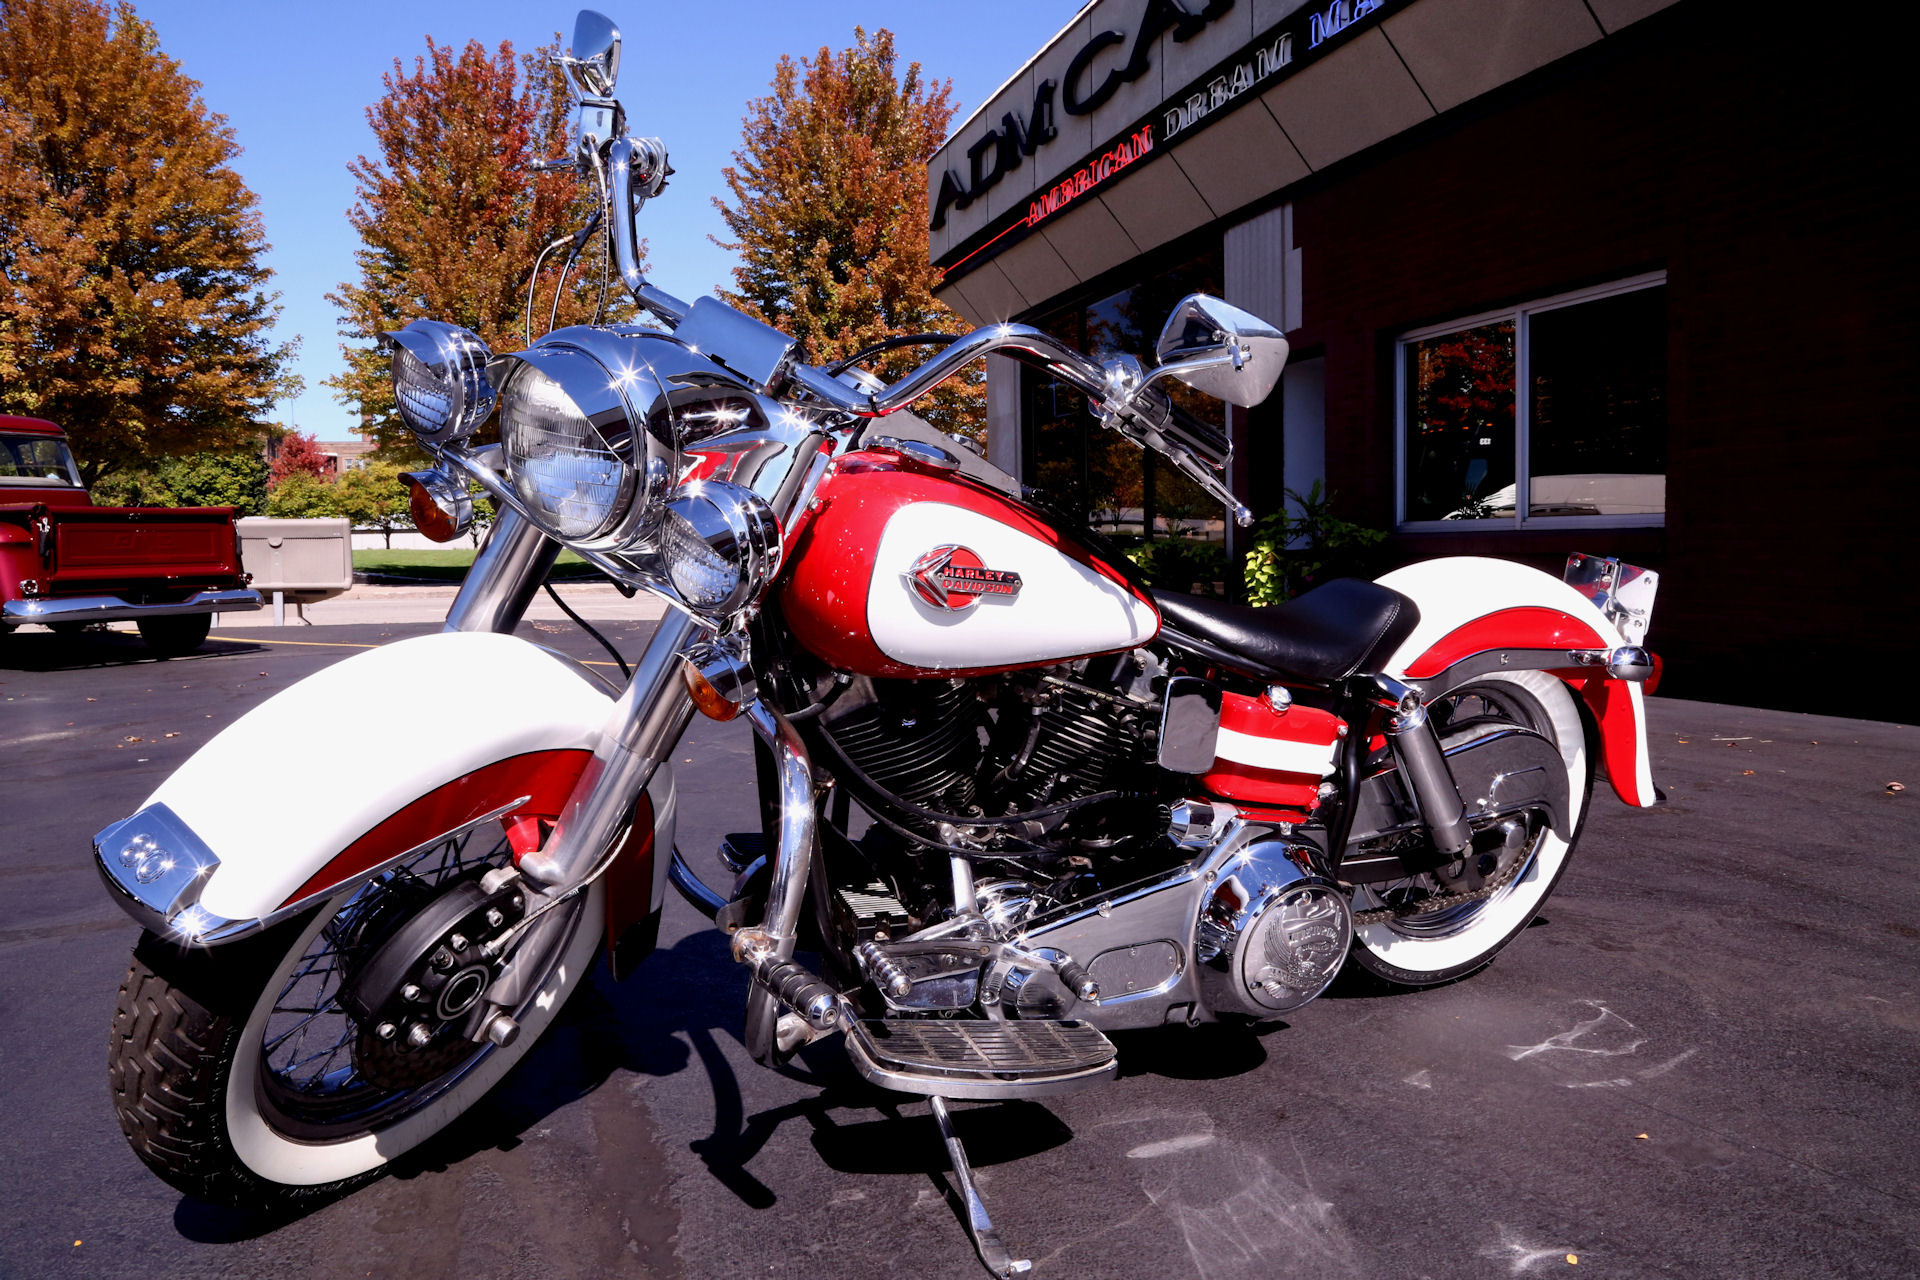 For Sale Used 1979 Harley Davidson Shovelhead Red & White | American Dream Machines Des Moines IA 50309